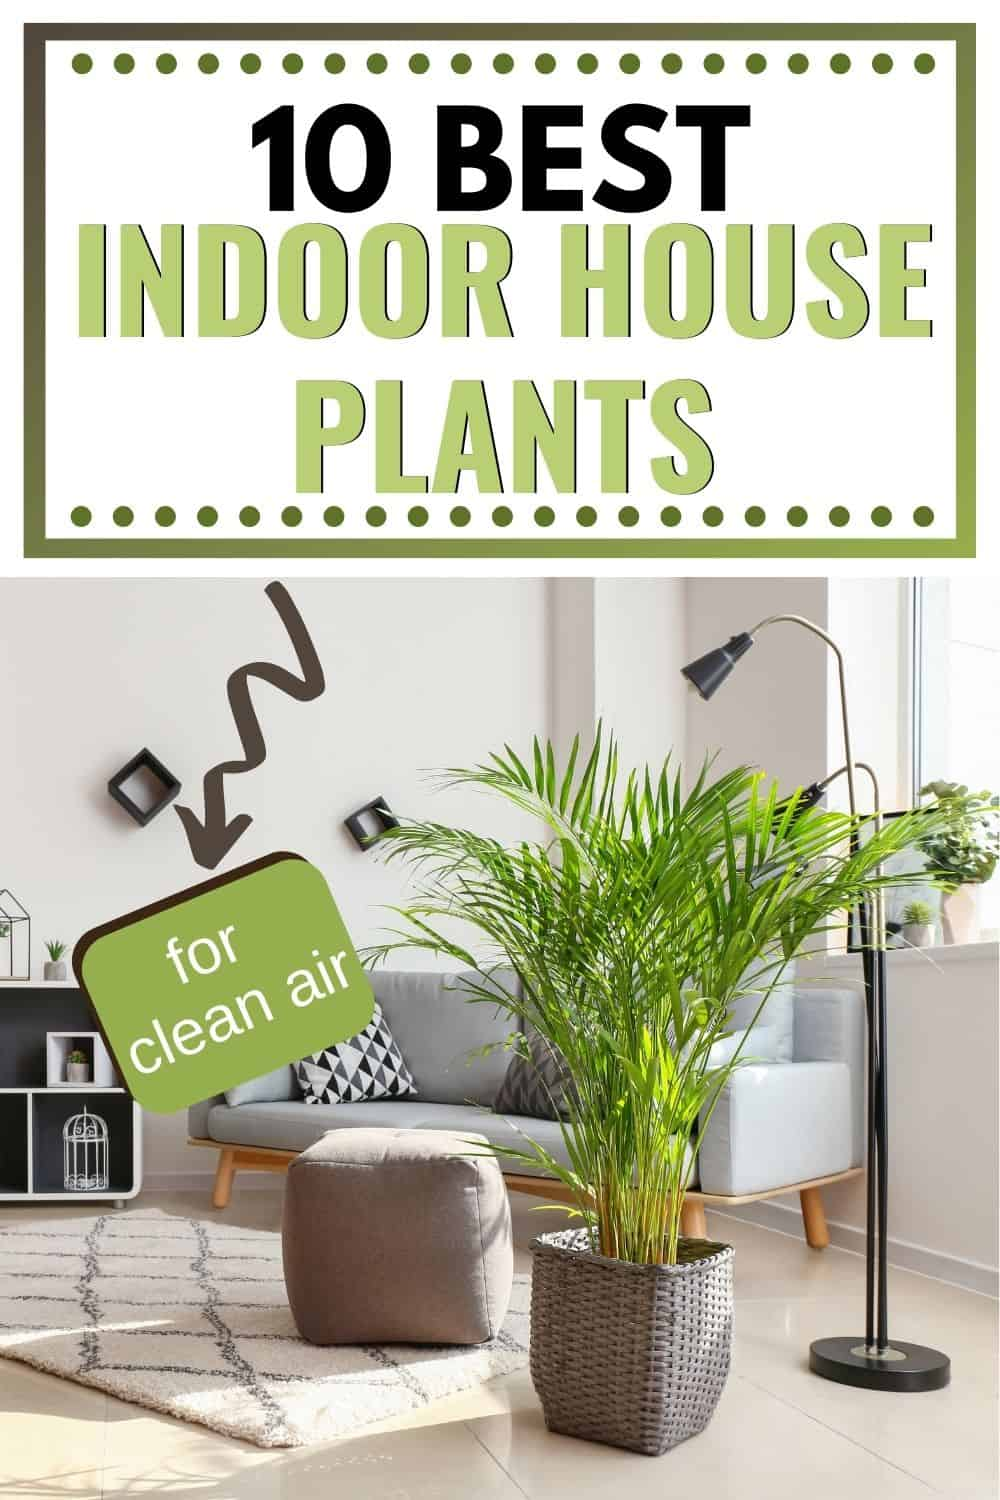 10 best indoor house plants for clean air